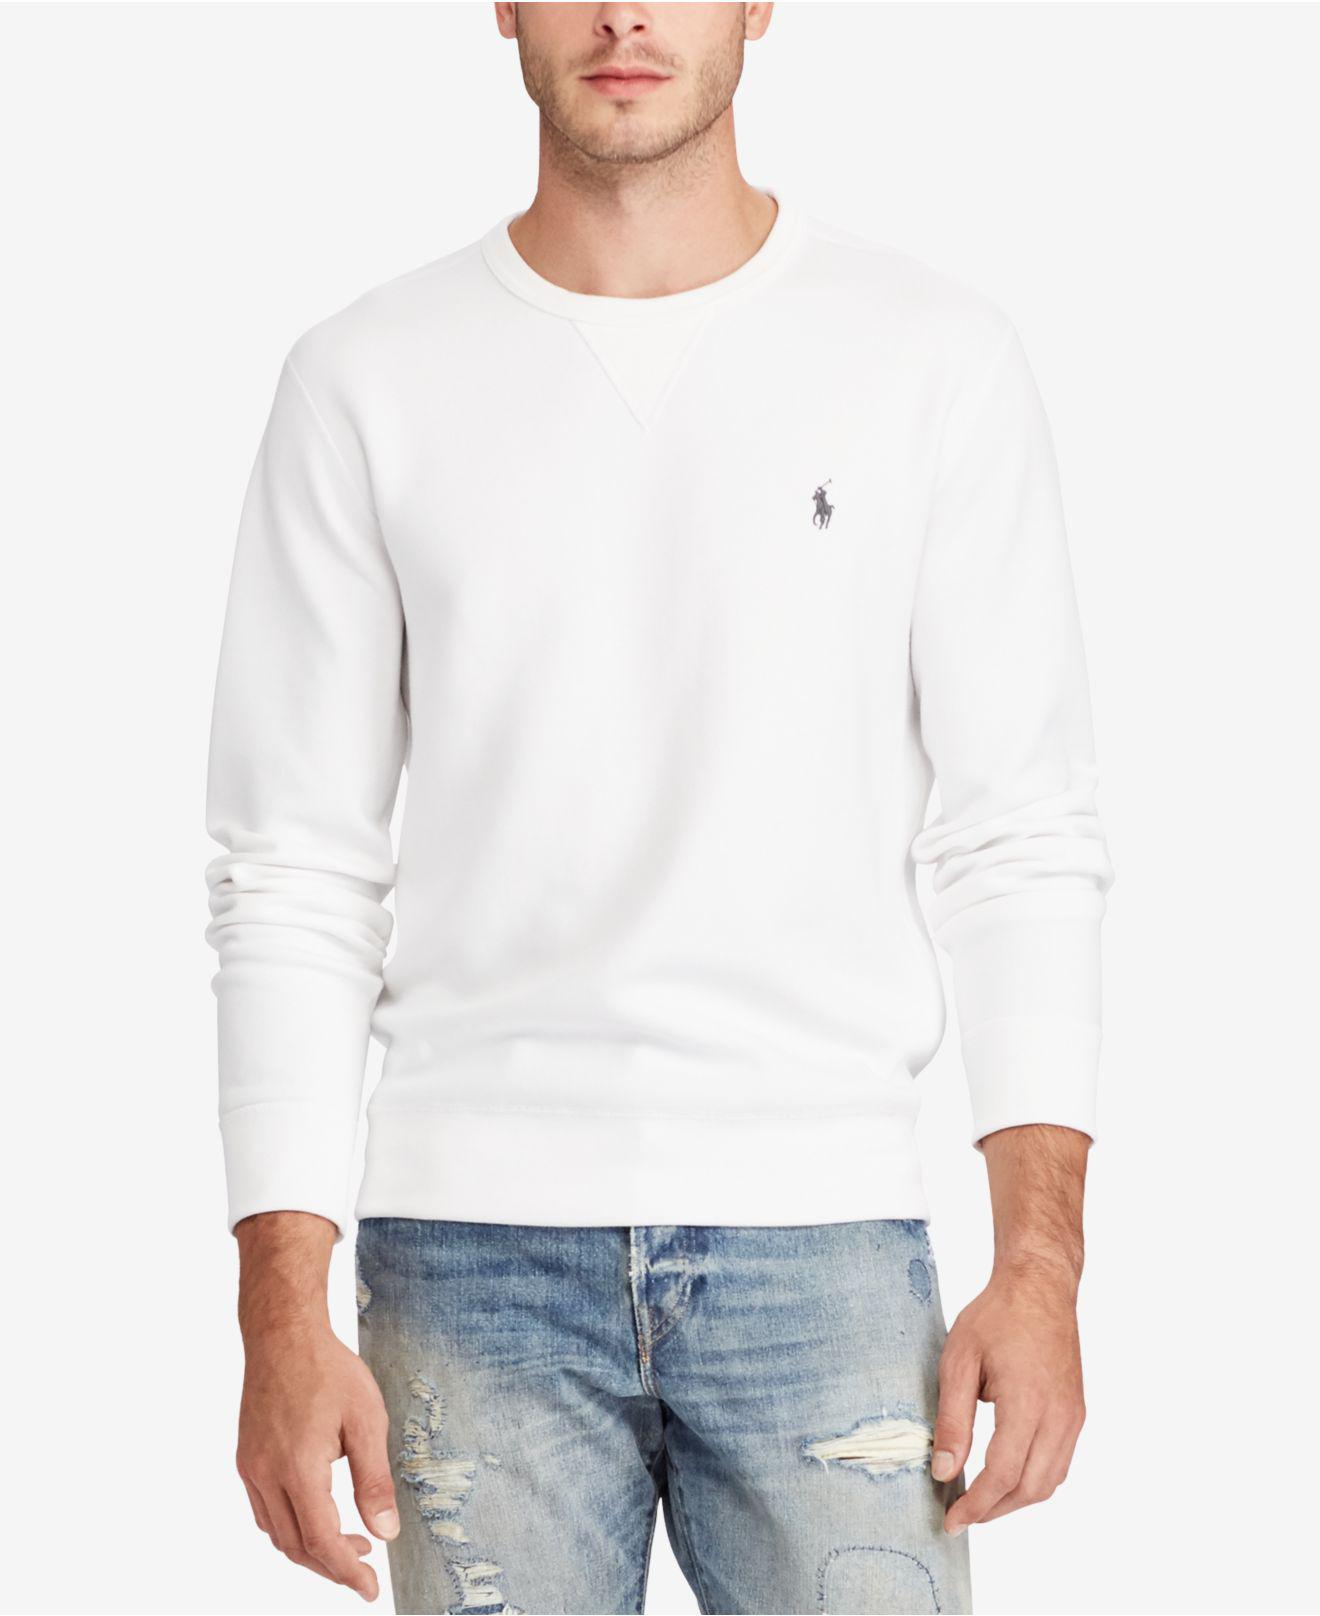 d1b77a4df5a5 Lyst - Polo Ralph Lauren Men s Double-knit Sweatshirt in White for ...